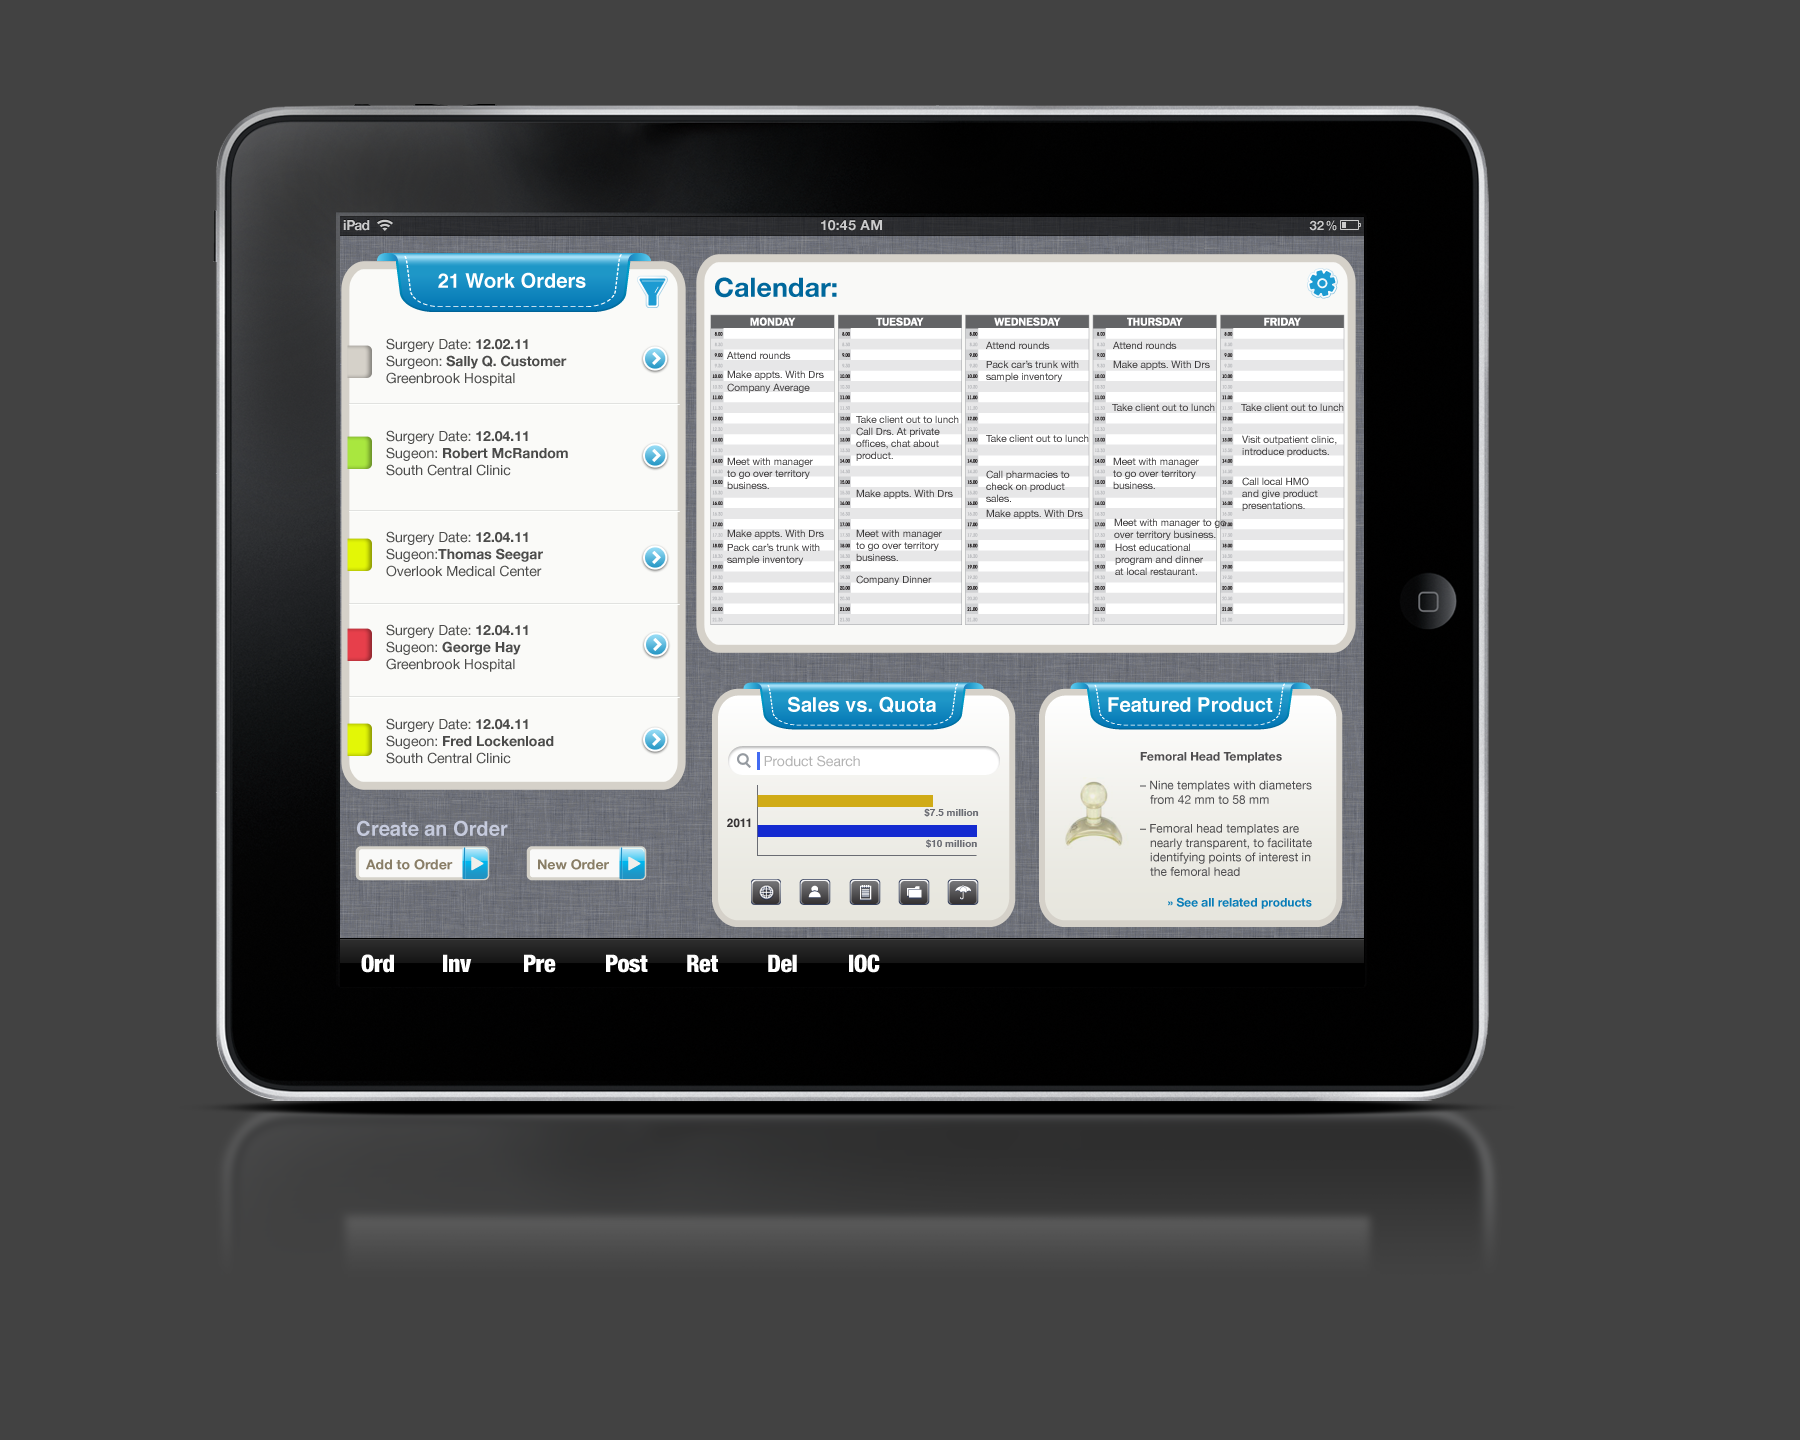 SAP iPad Application by Excellis Interactive